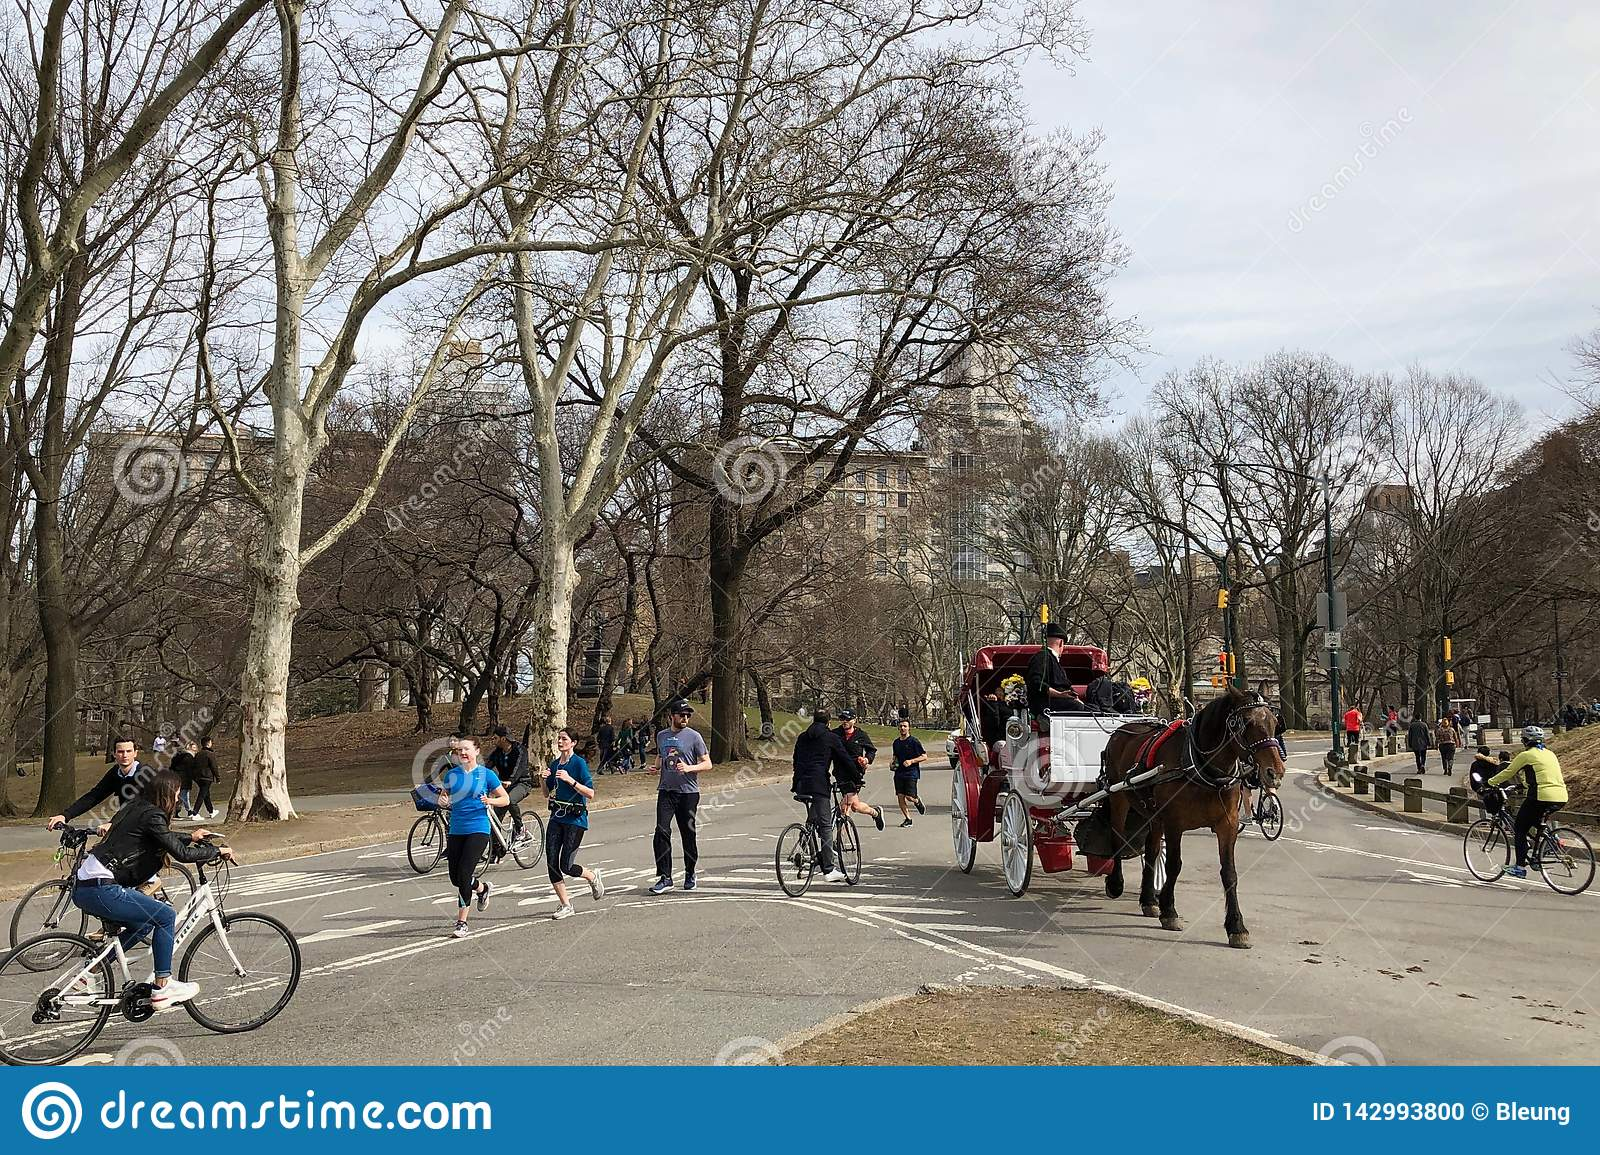 New York City, New York - March 24, 2019: People enjoying a sunny and warm day by taking a horse carriage ride in Central Park